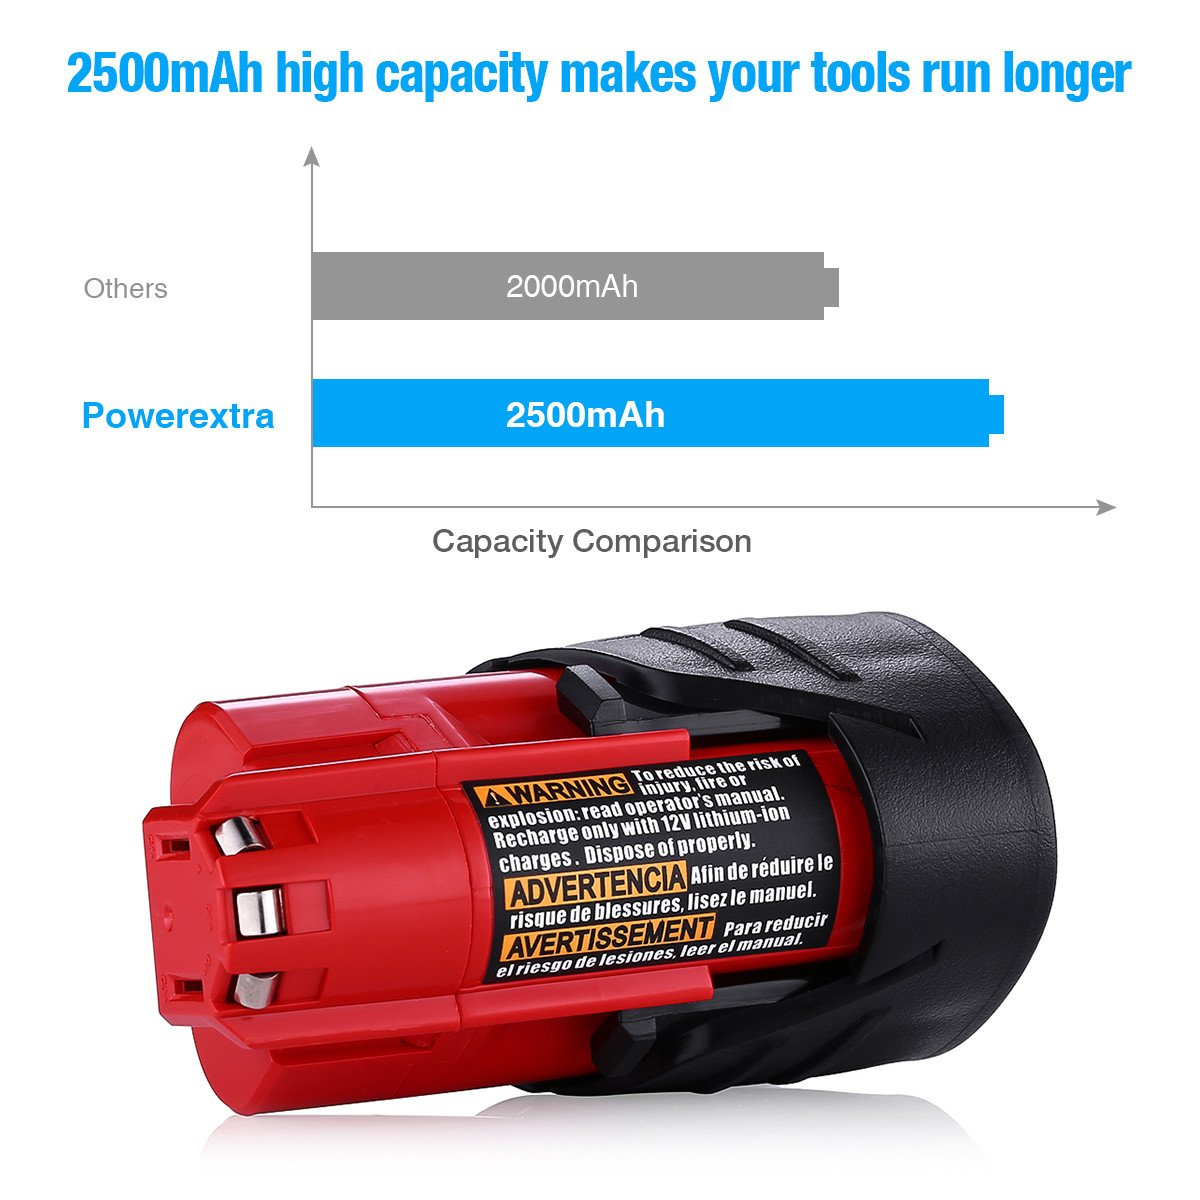 Powerextra 2 Pack 12V 2500mAh Lithium-ion Replacement Battery Compatible with Milwaukee M12 Milwaukee 48-11-2411 REDLITHIUM 12-Volt Cordless Milwaukee Tools Milwaukee 12V Battery Lithium-ion by Powerextra (Image #4)